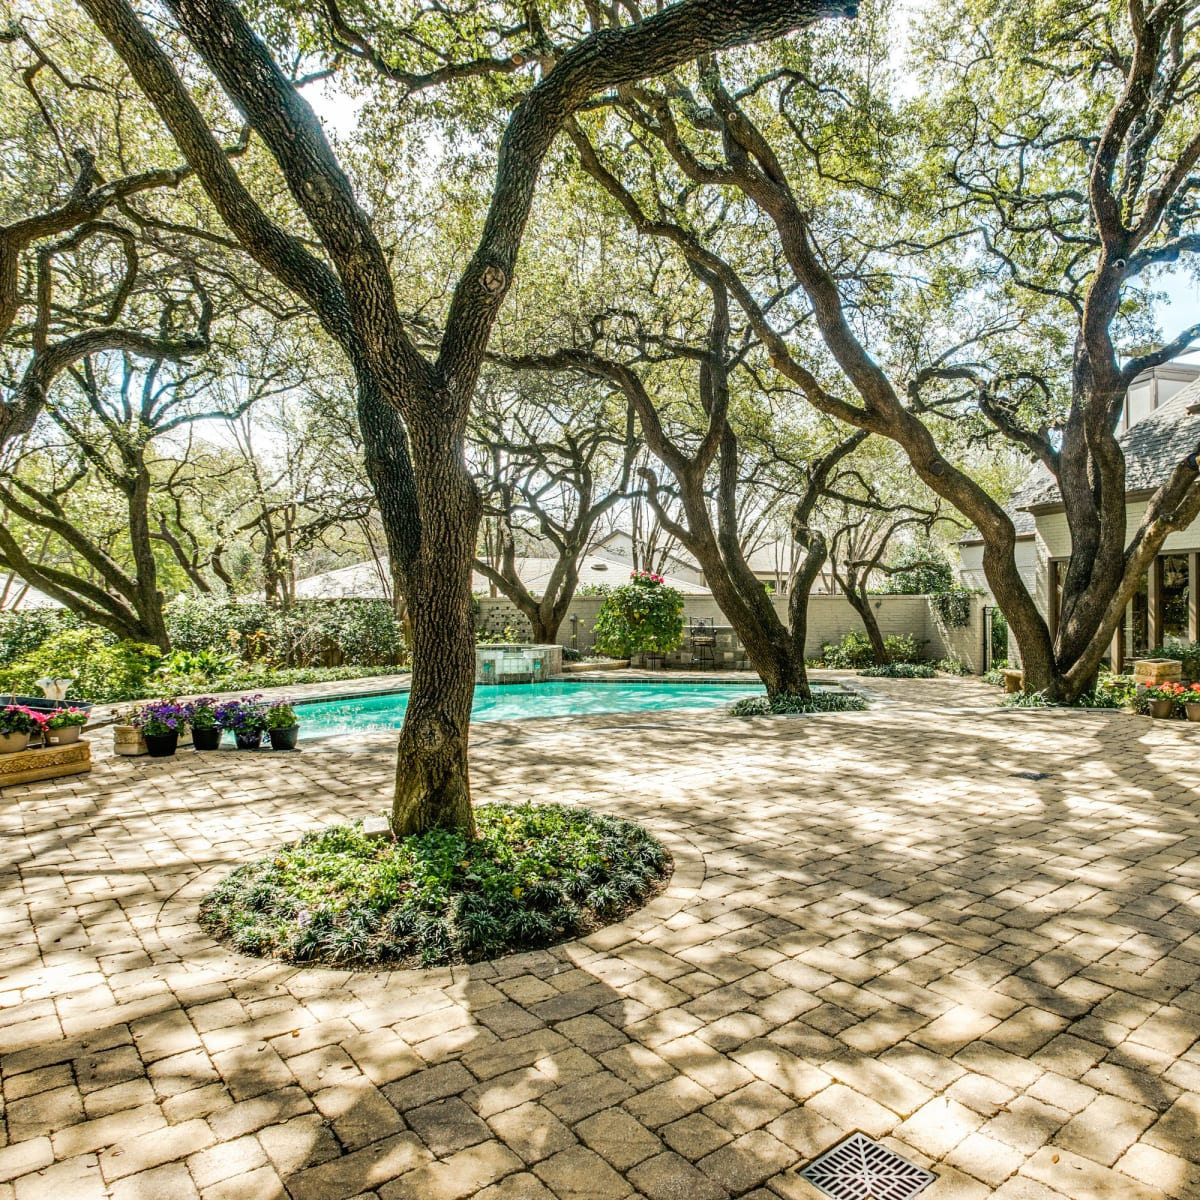 5656 Meaders Circle in Dallas